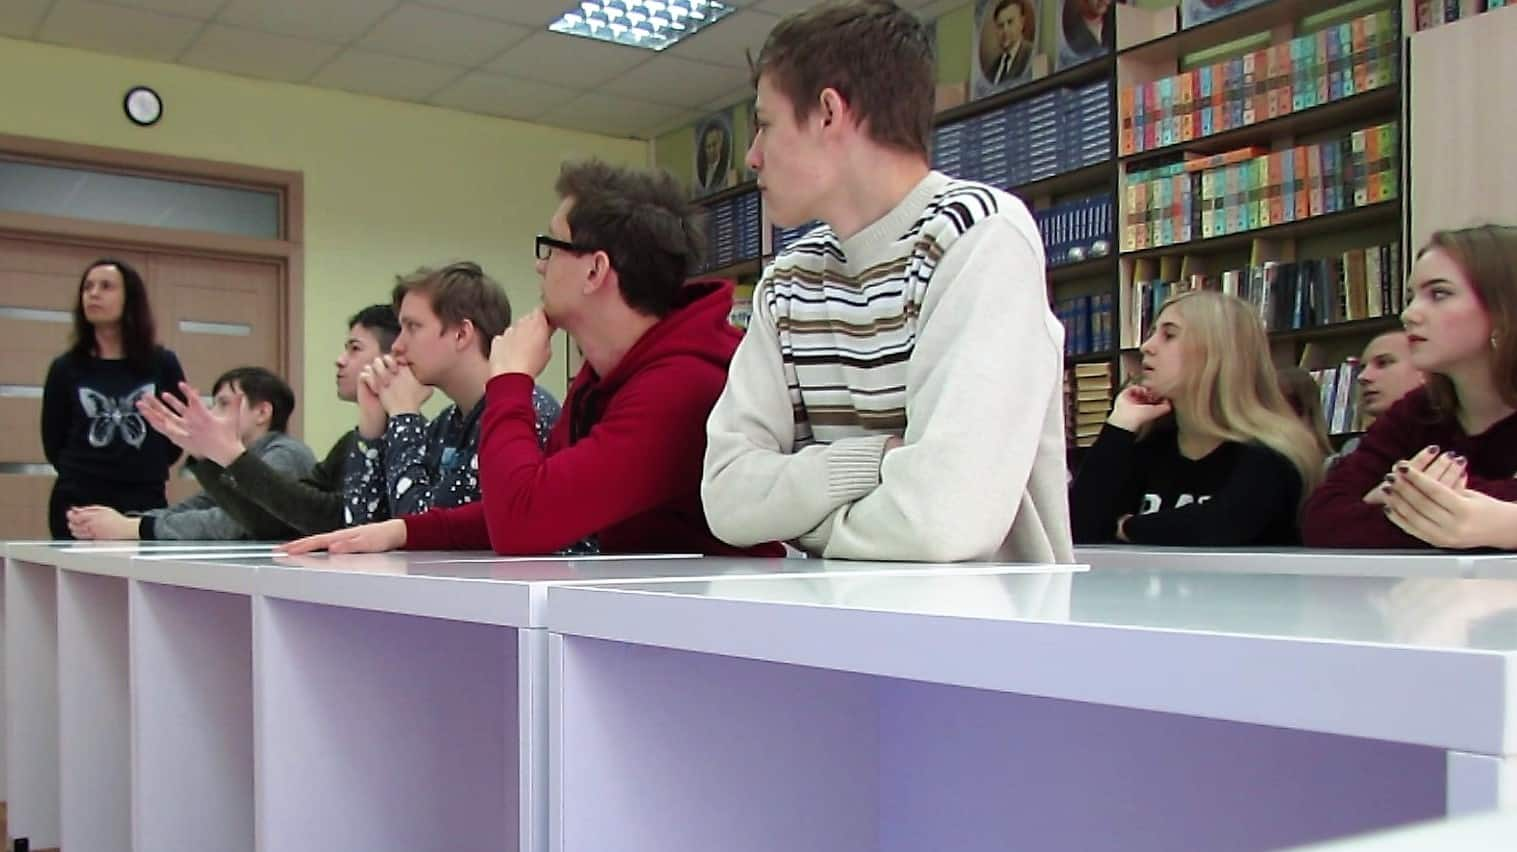 Students sit at white desks in a classroom, bookshelves are in the background